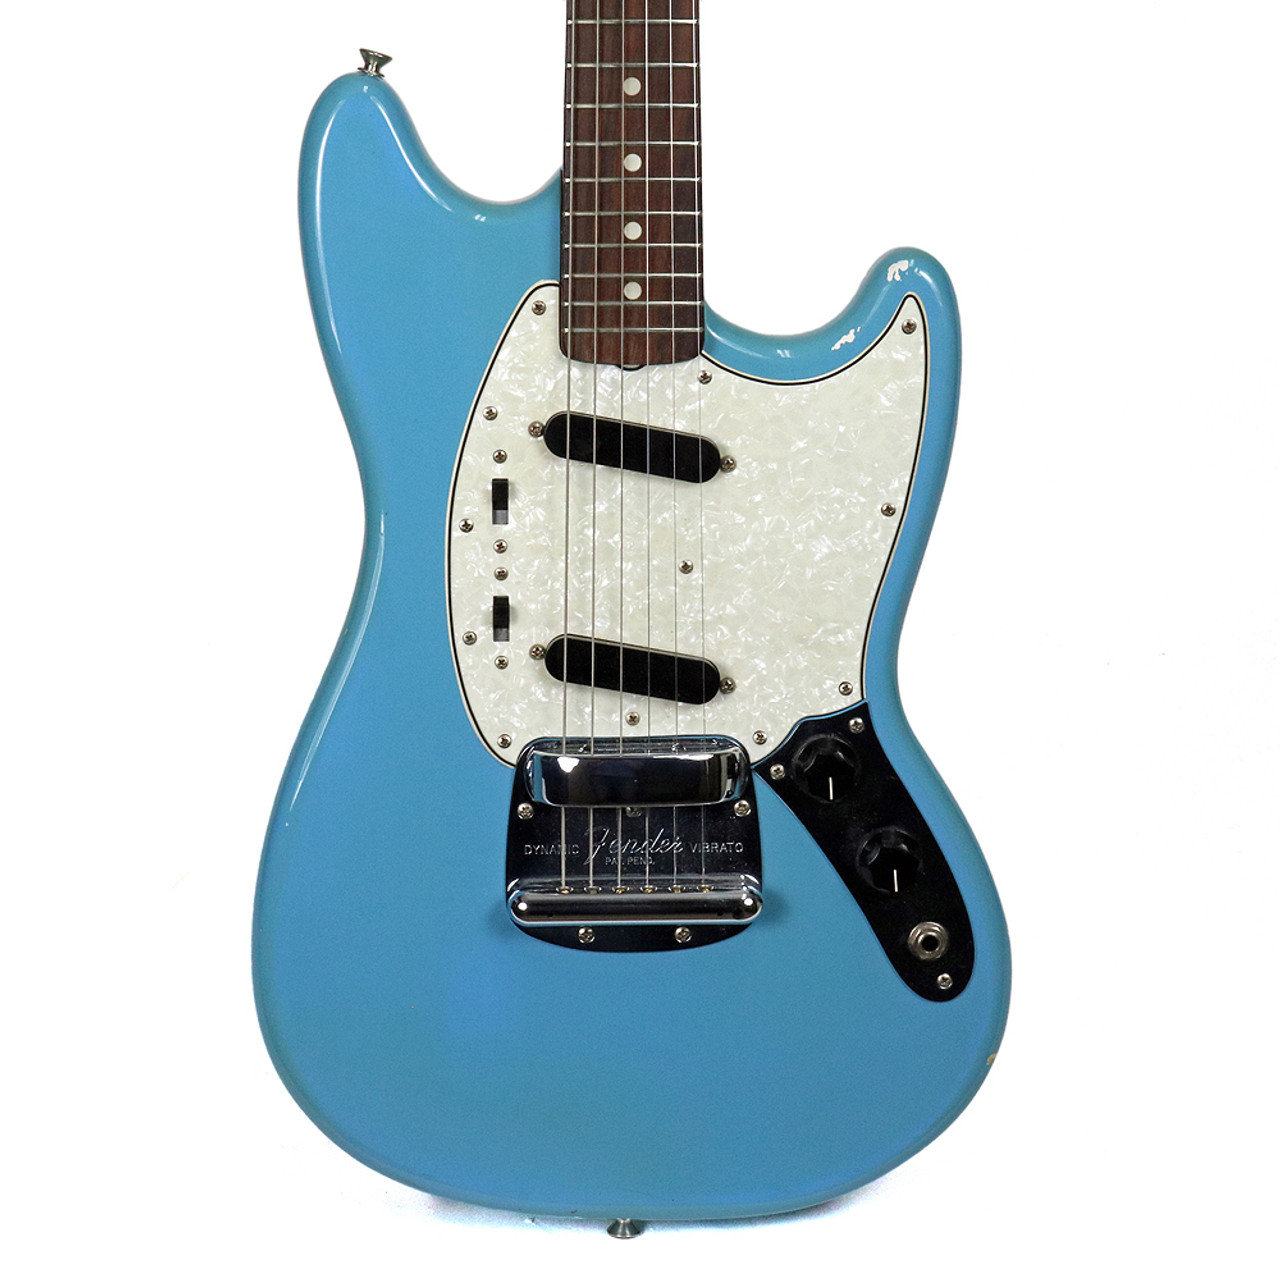 Vintage 1966 Fender Mustang Electric Guitar Blue Finish | Cream City ...